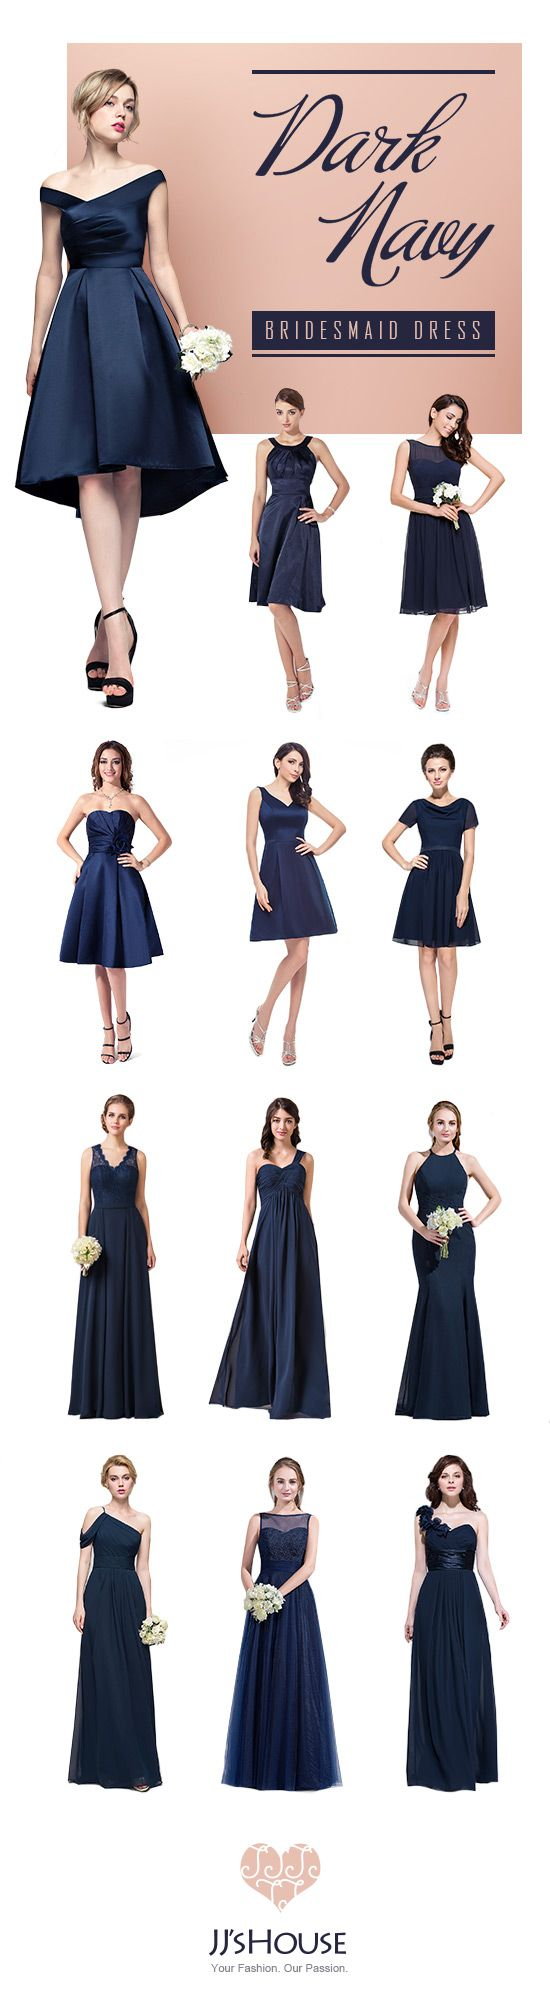 Dark Navy Bridesmaid Dress! #Bridesmaiddress | Dresses | Pinterest ...